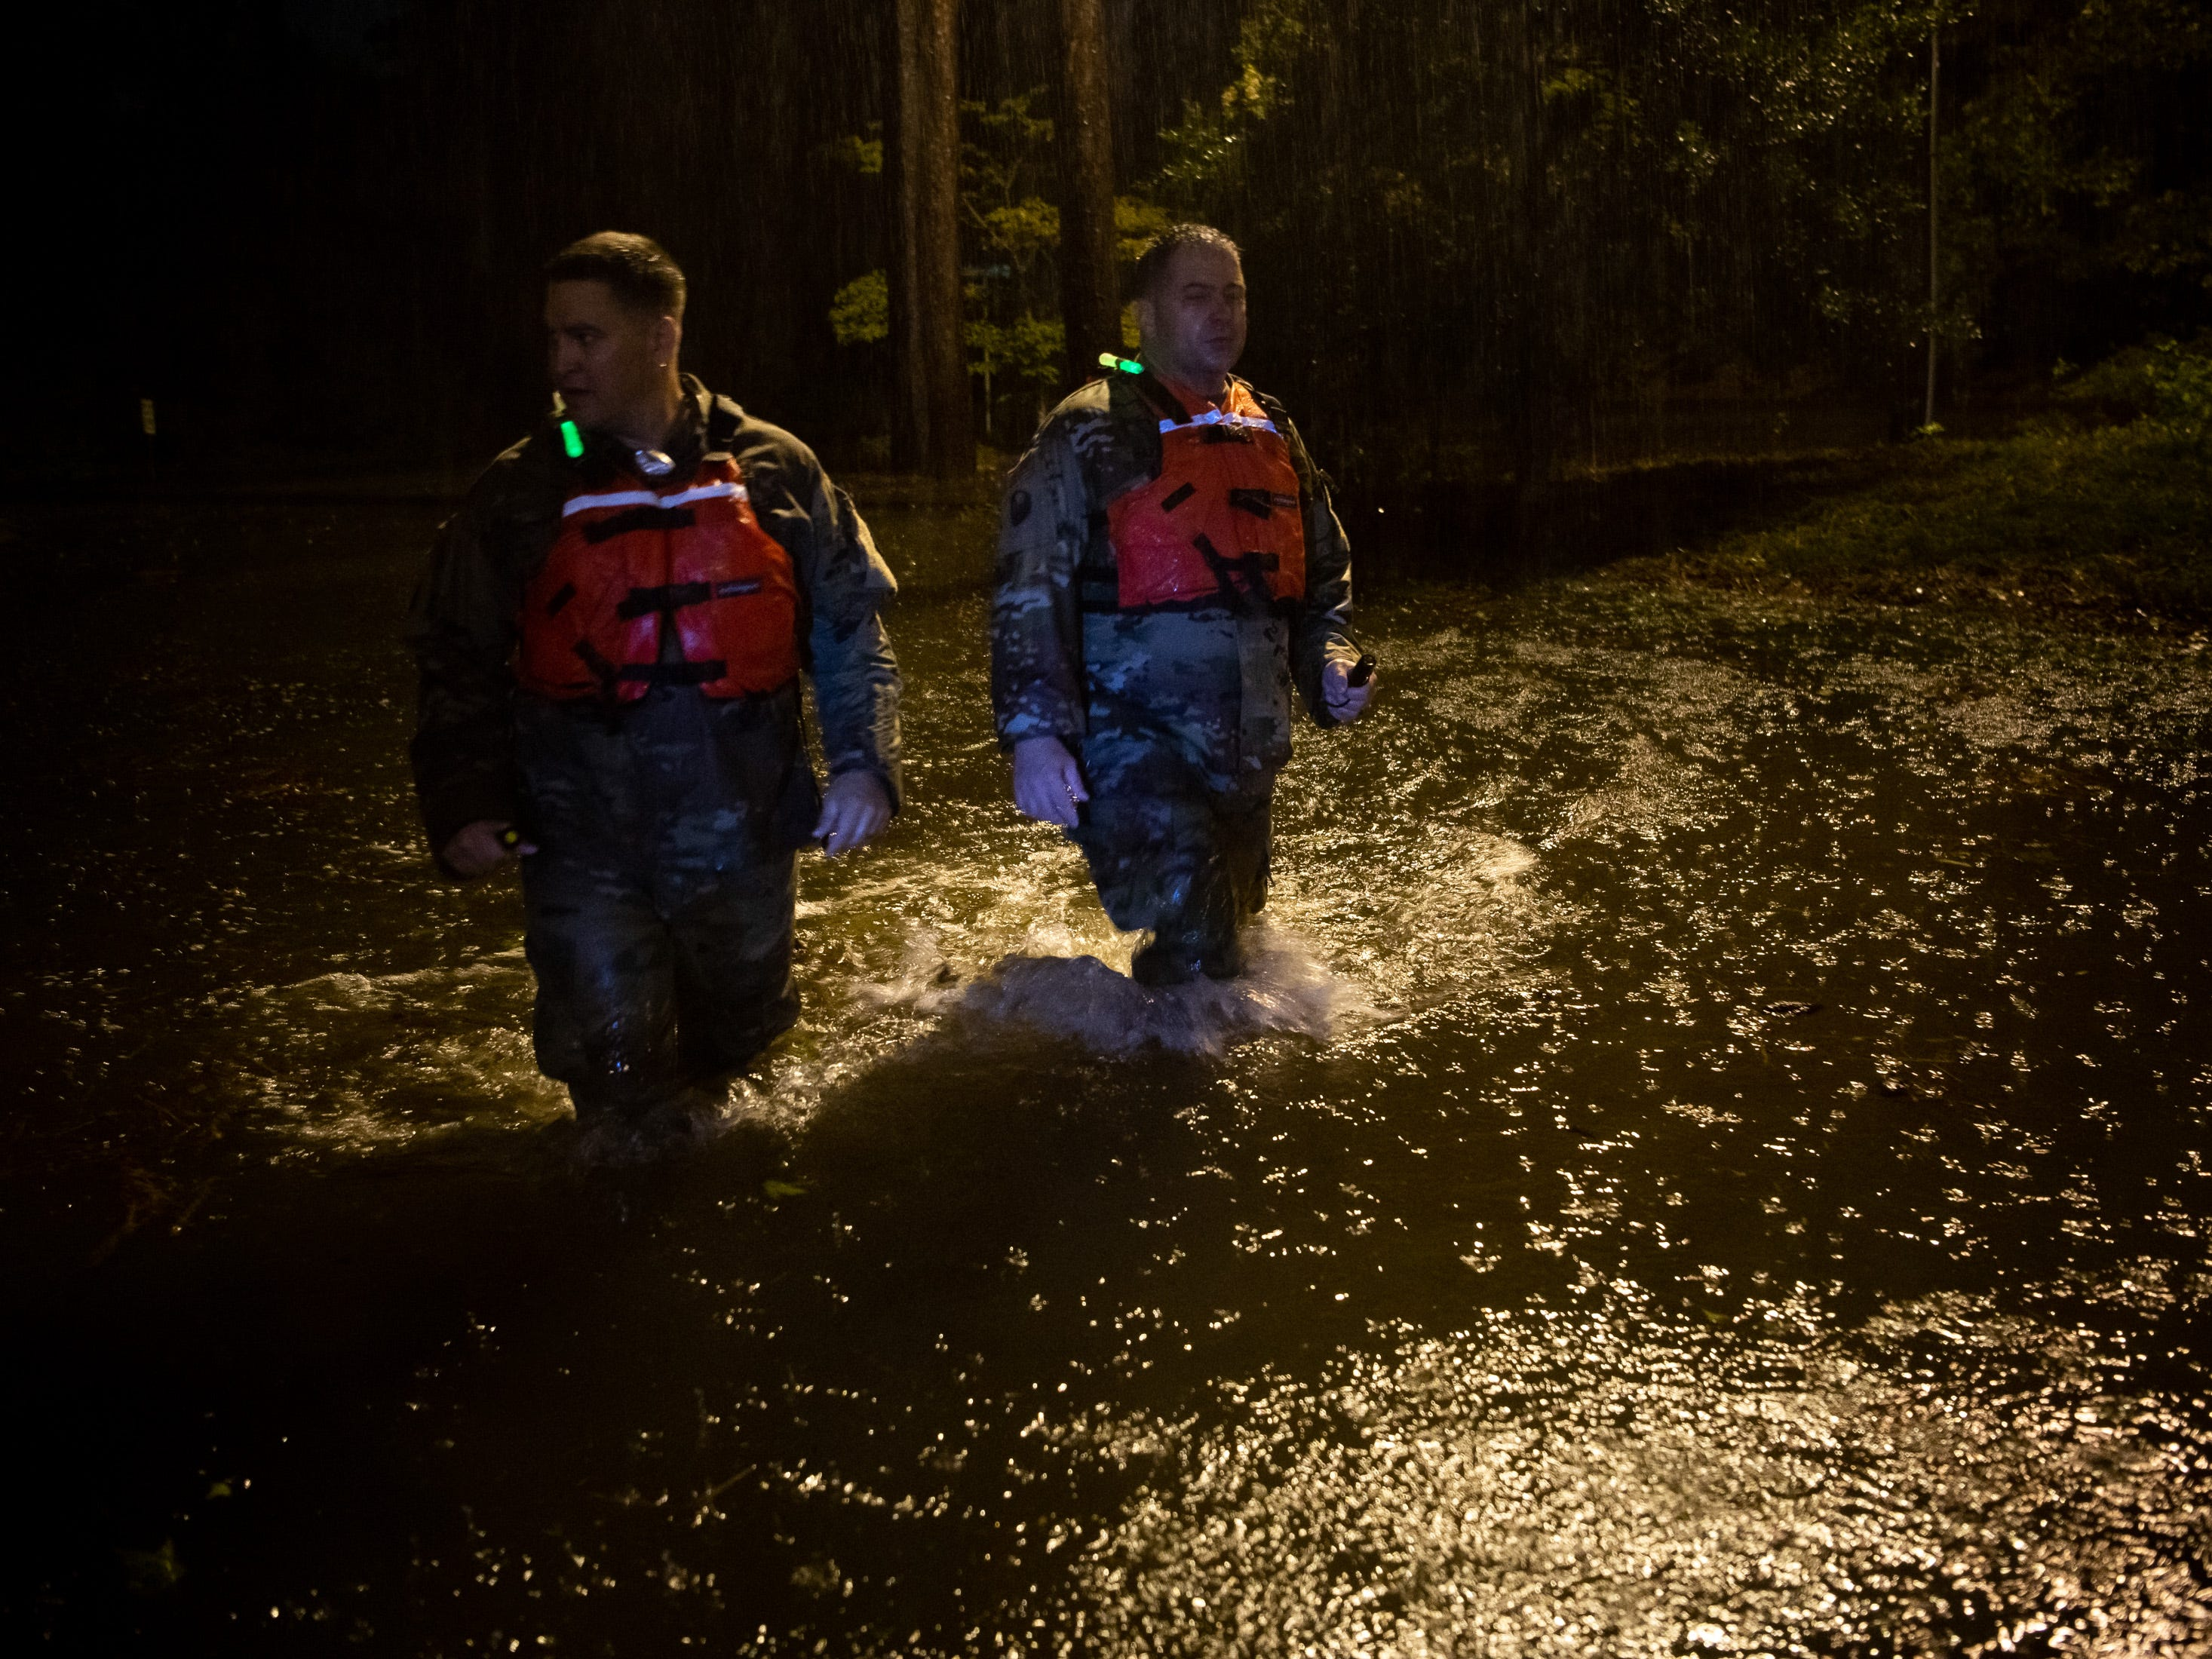 1SG Christopher Jones, left, and CSM Sid Baker, right, of the North Carolina National Guard patrol a flooded neighborhood as rain from Tropical Storm Florence continues to fall on Lumberton, N.C., Saturday, Sept. 15, 2018.